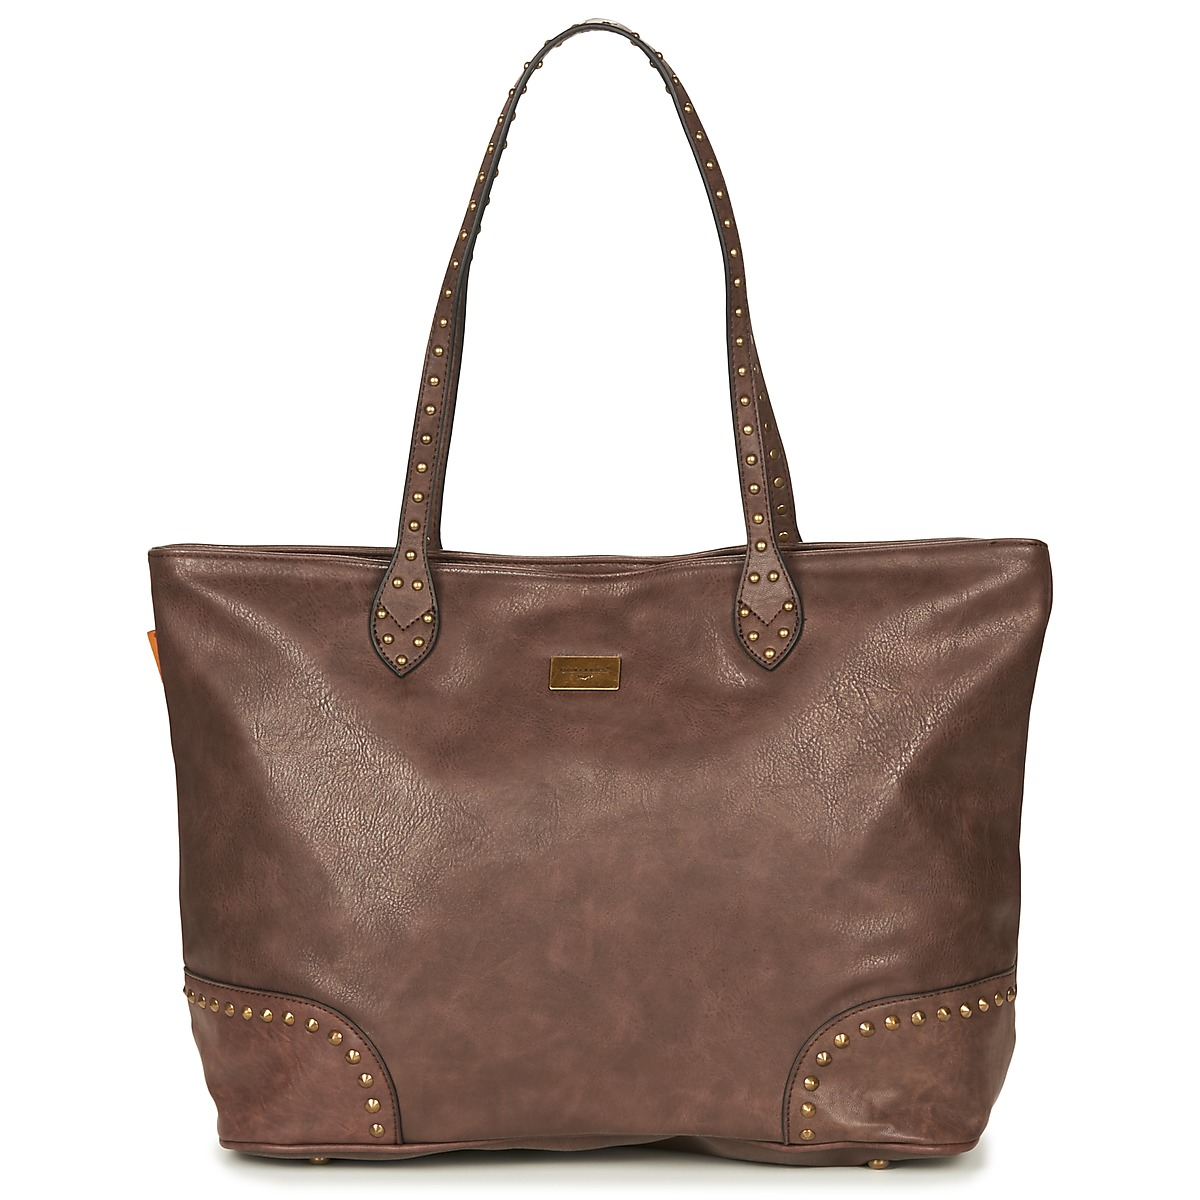 Borsa Shopping donna David Jones  -  Marrone